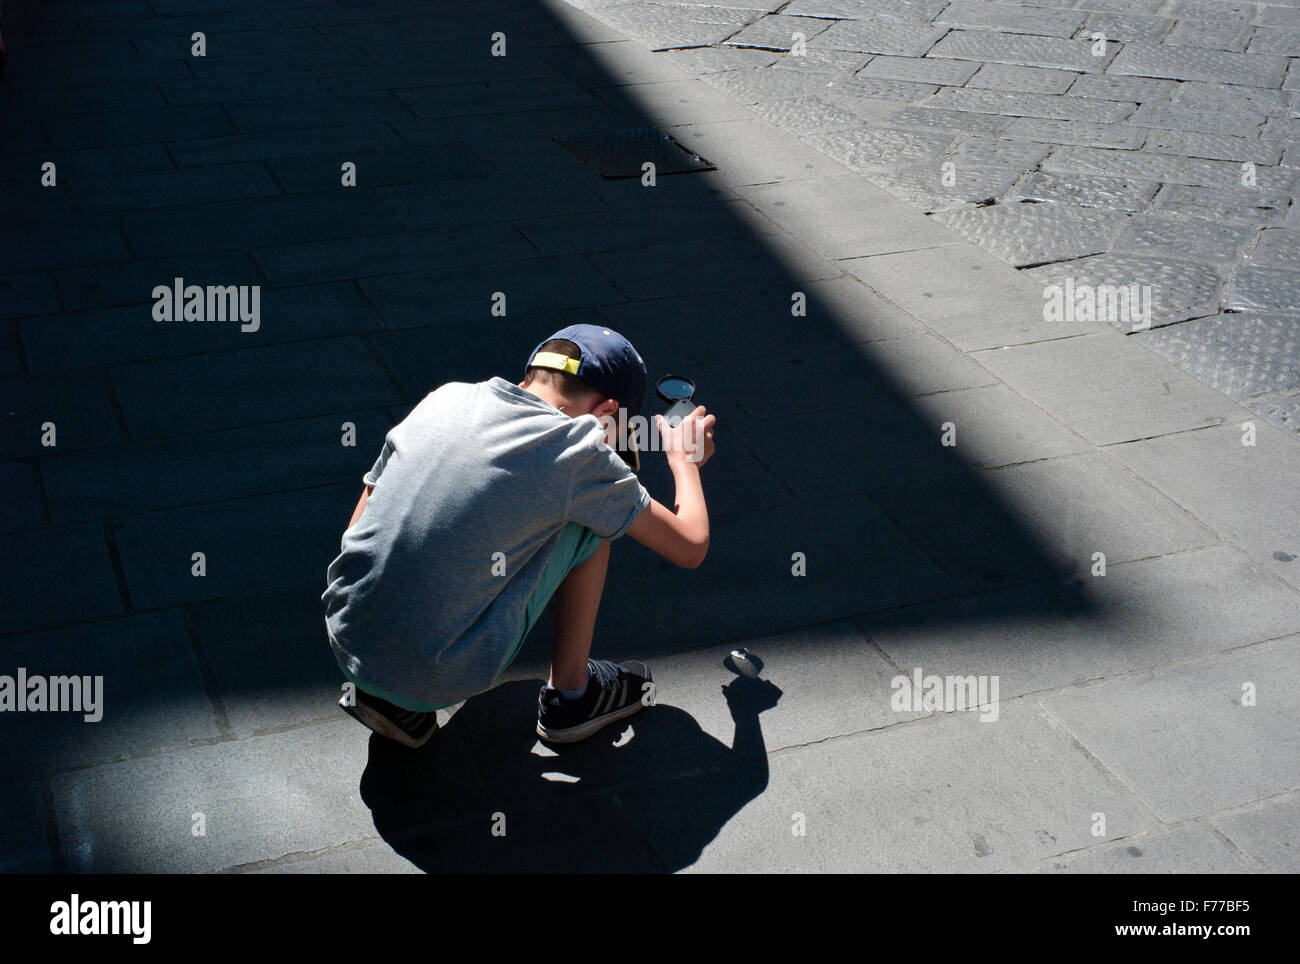 boy crouches on street Burning Paper Using Magnifying Glass - Stock Image